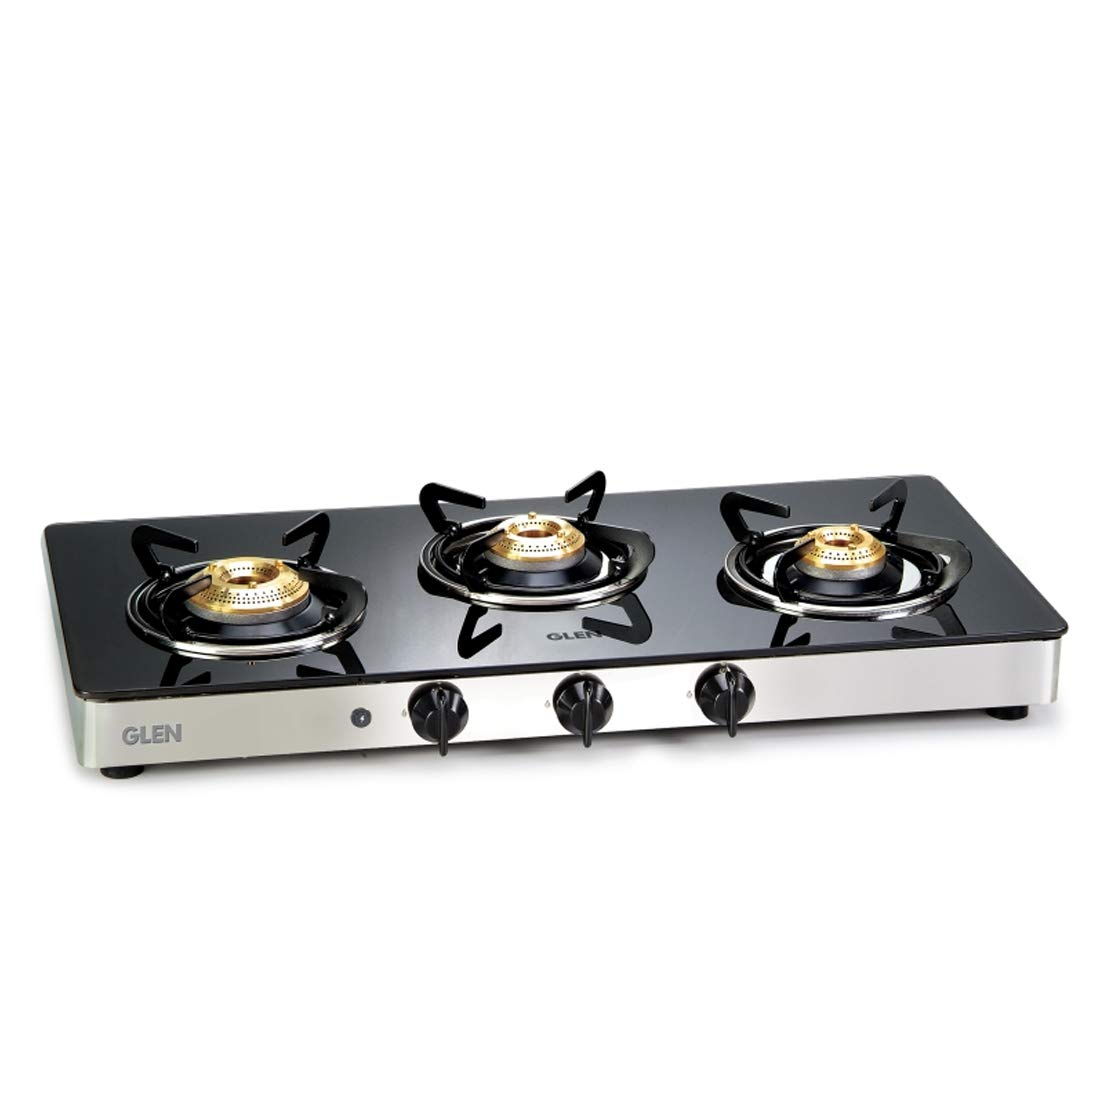 Best Gas Stove Reviews & Buyer's Guide